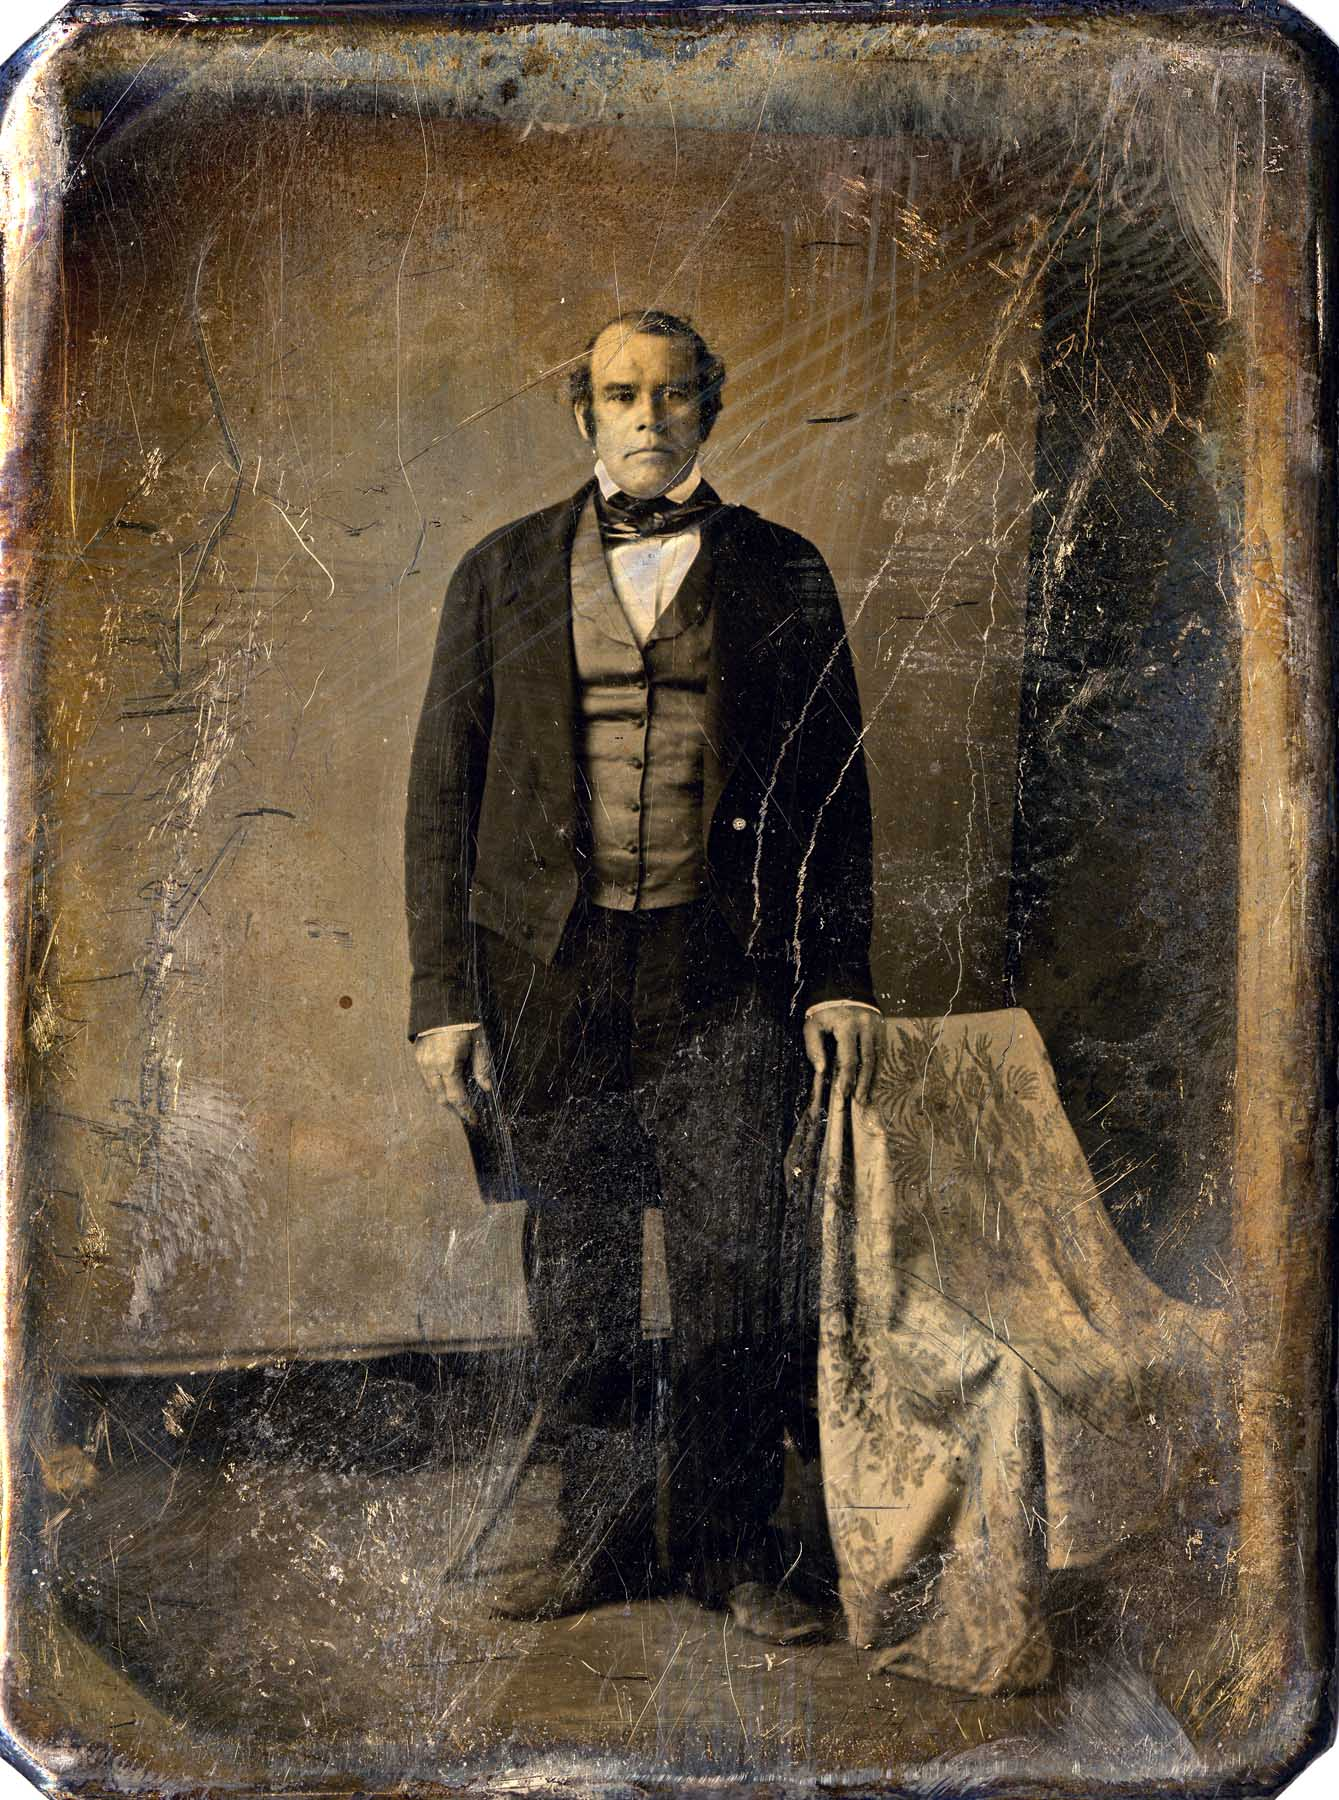 Parley P. Pratt ca. early 1850s. Courtesy of The Church of Jesus Christ of Latter-day Saints